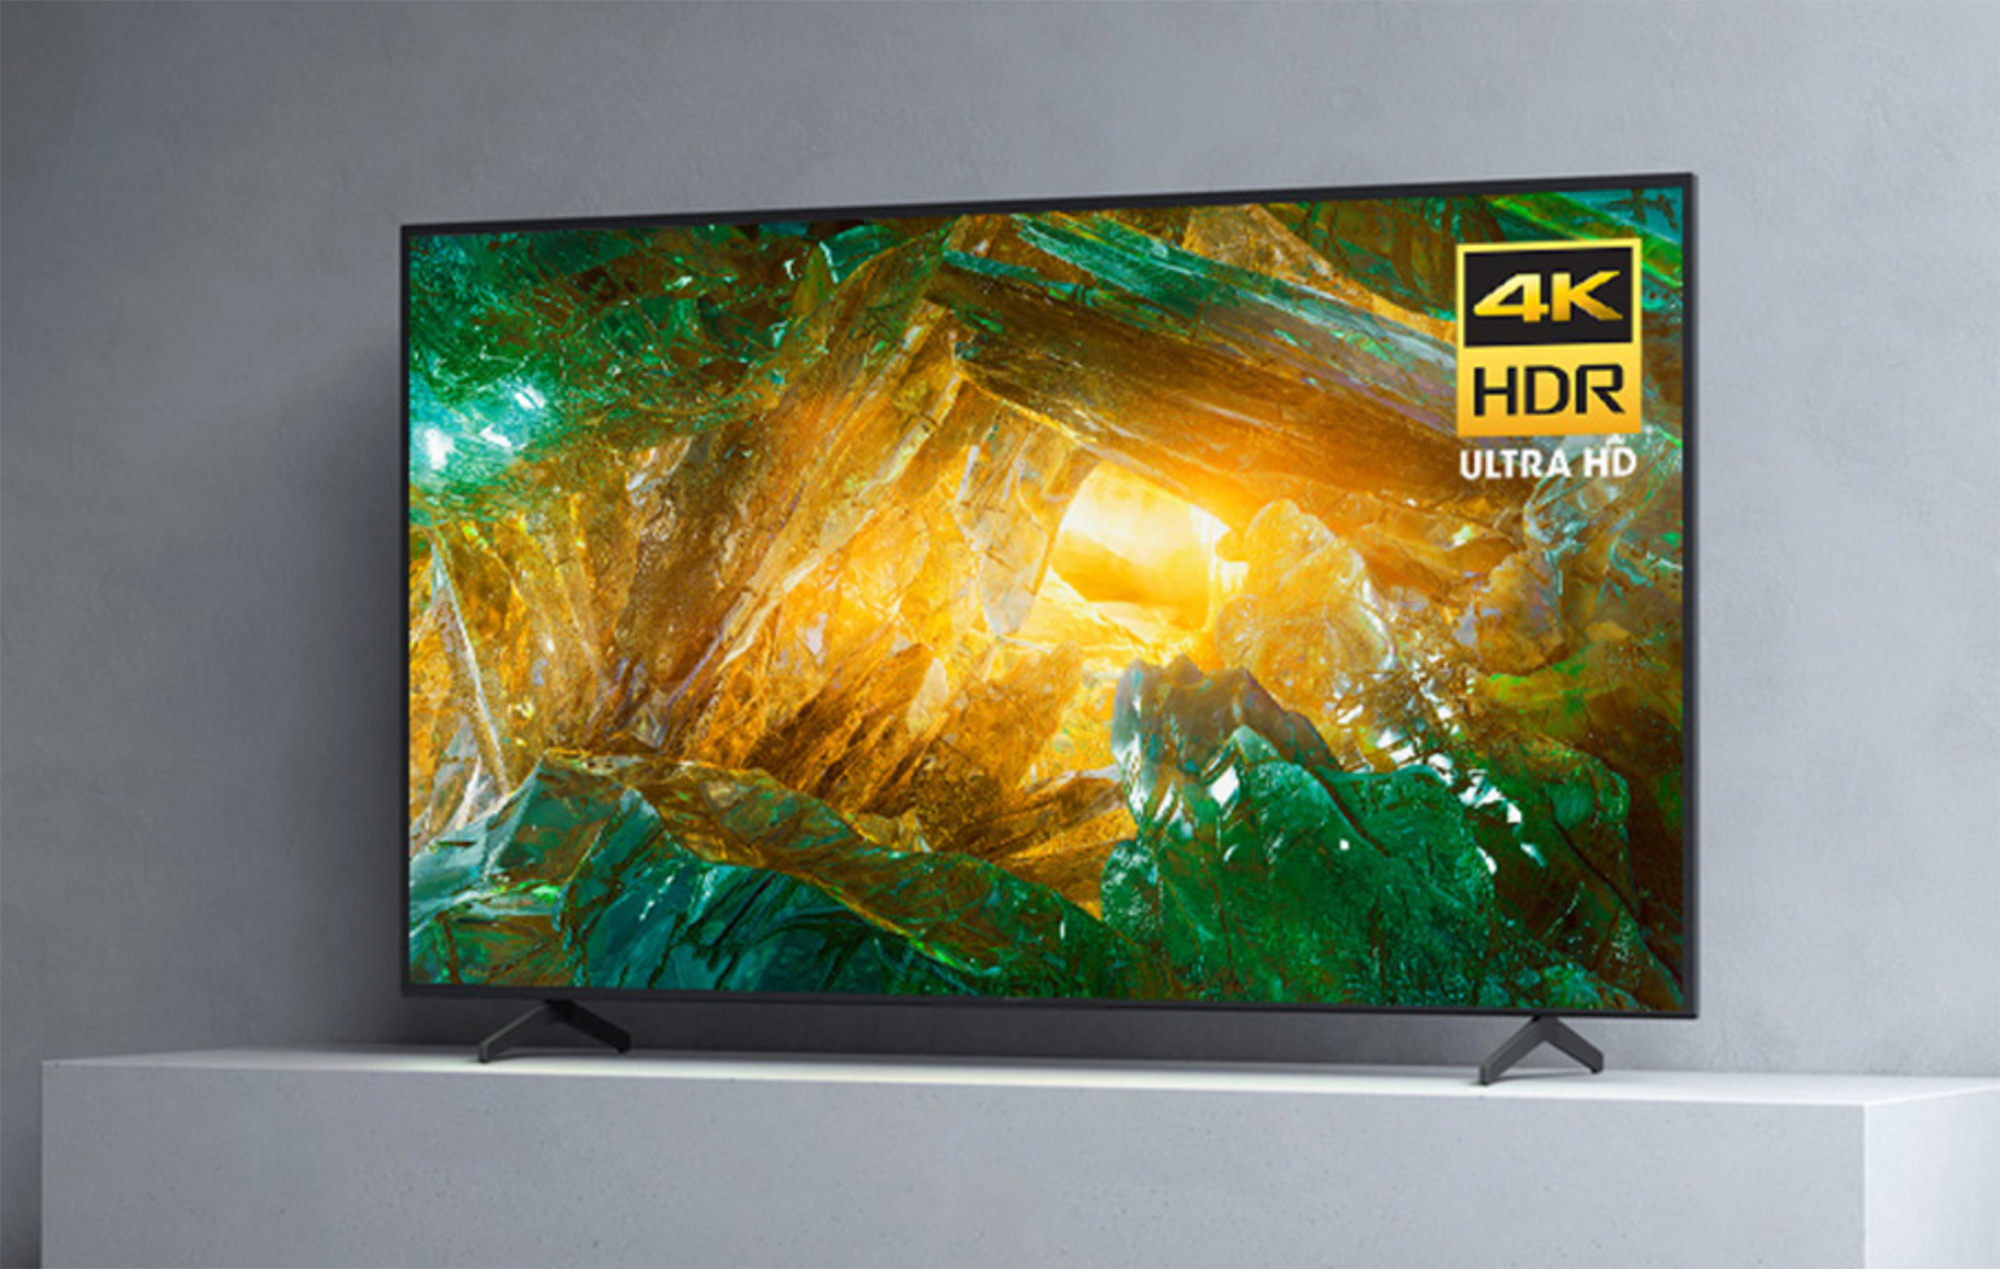 This 43-inch Sony 4K Ultra HD Smart TV is a steal at 25 per cent off | NME